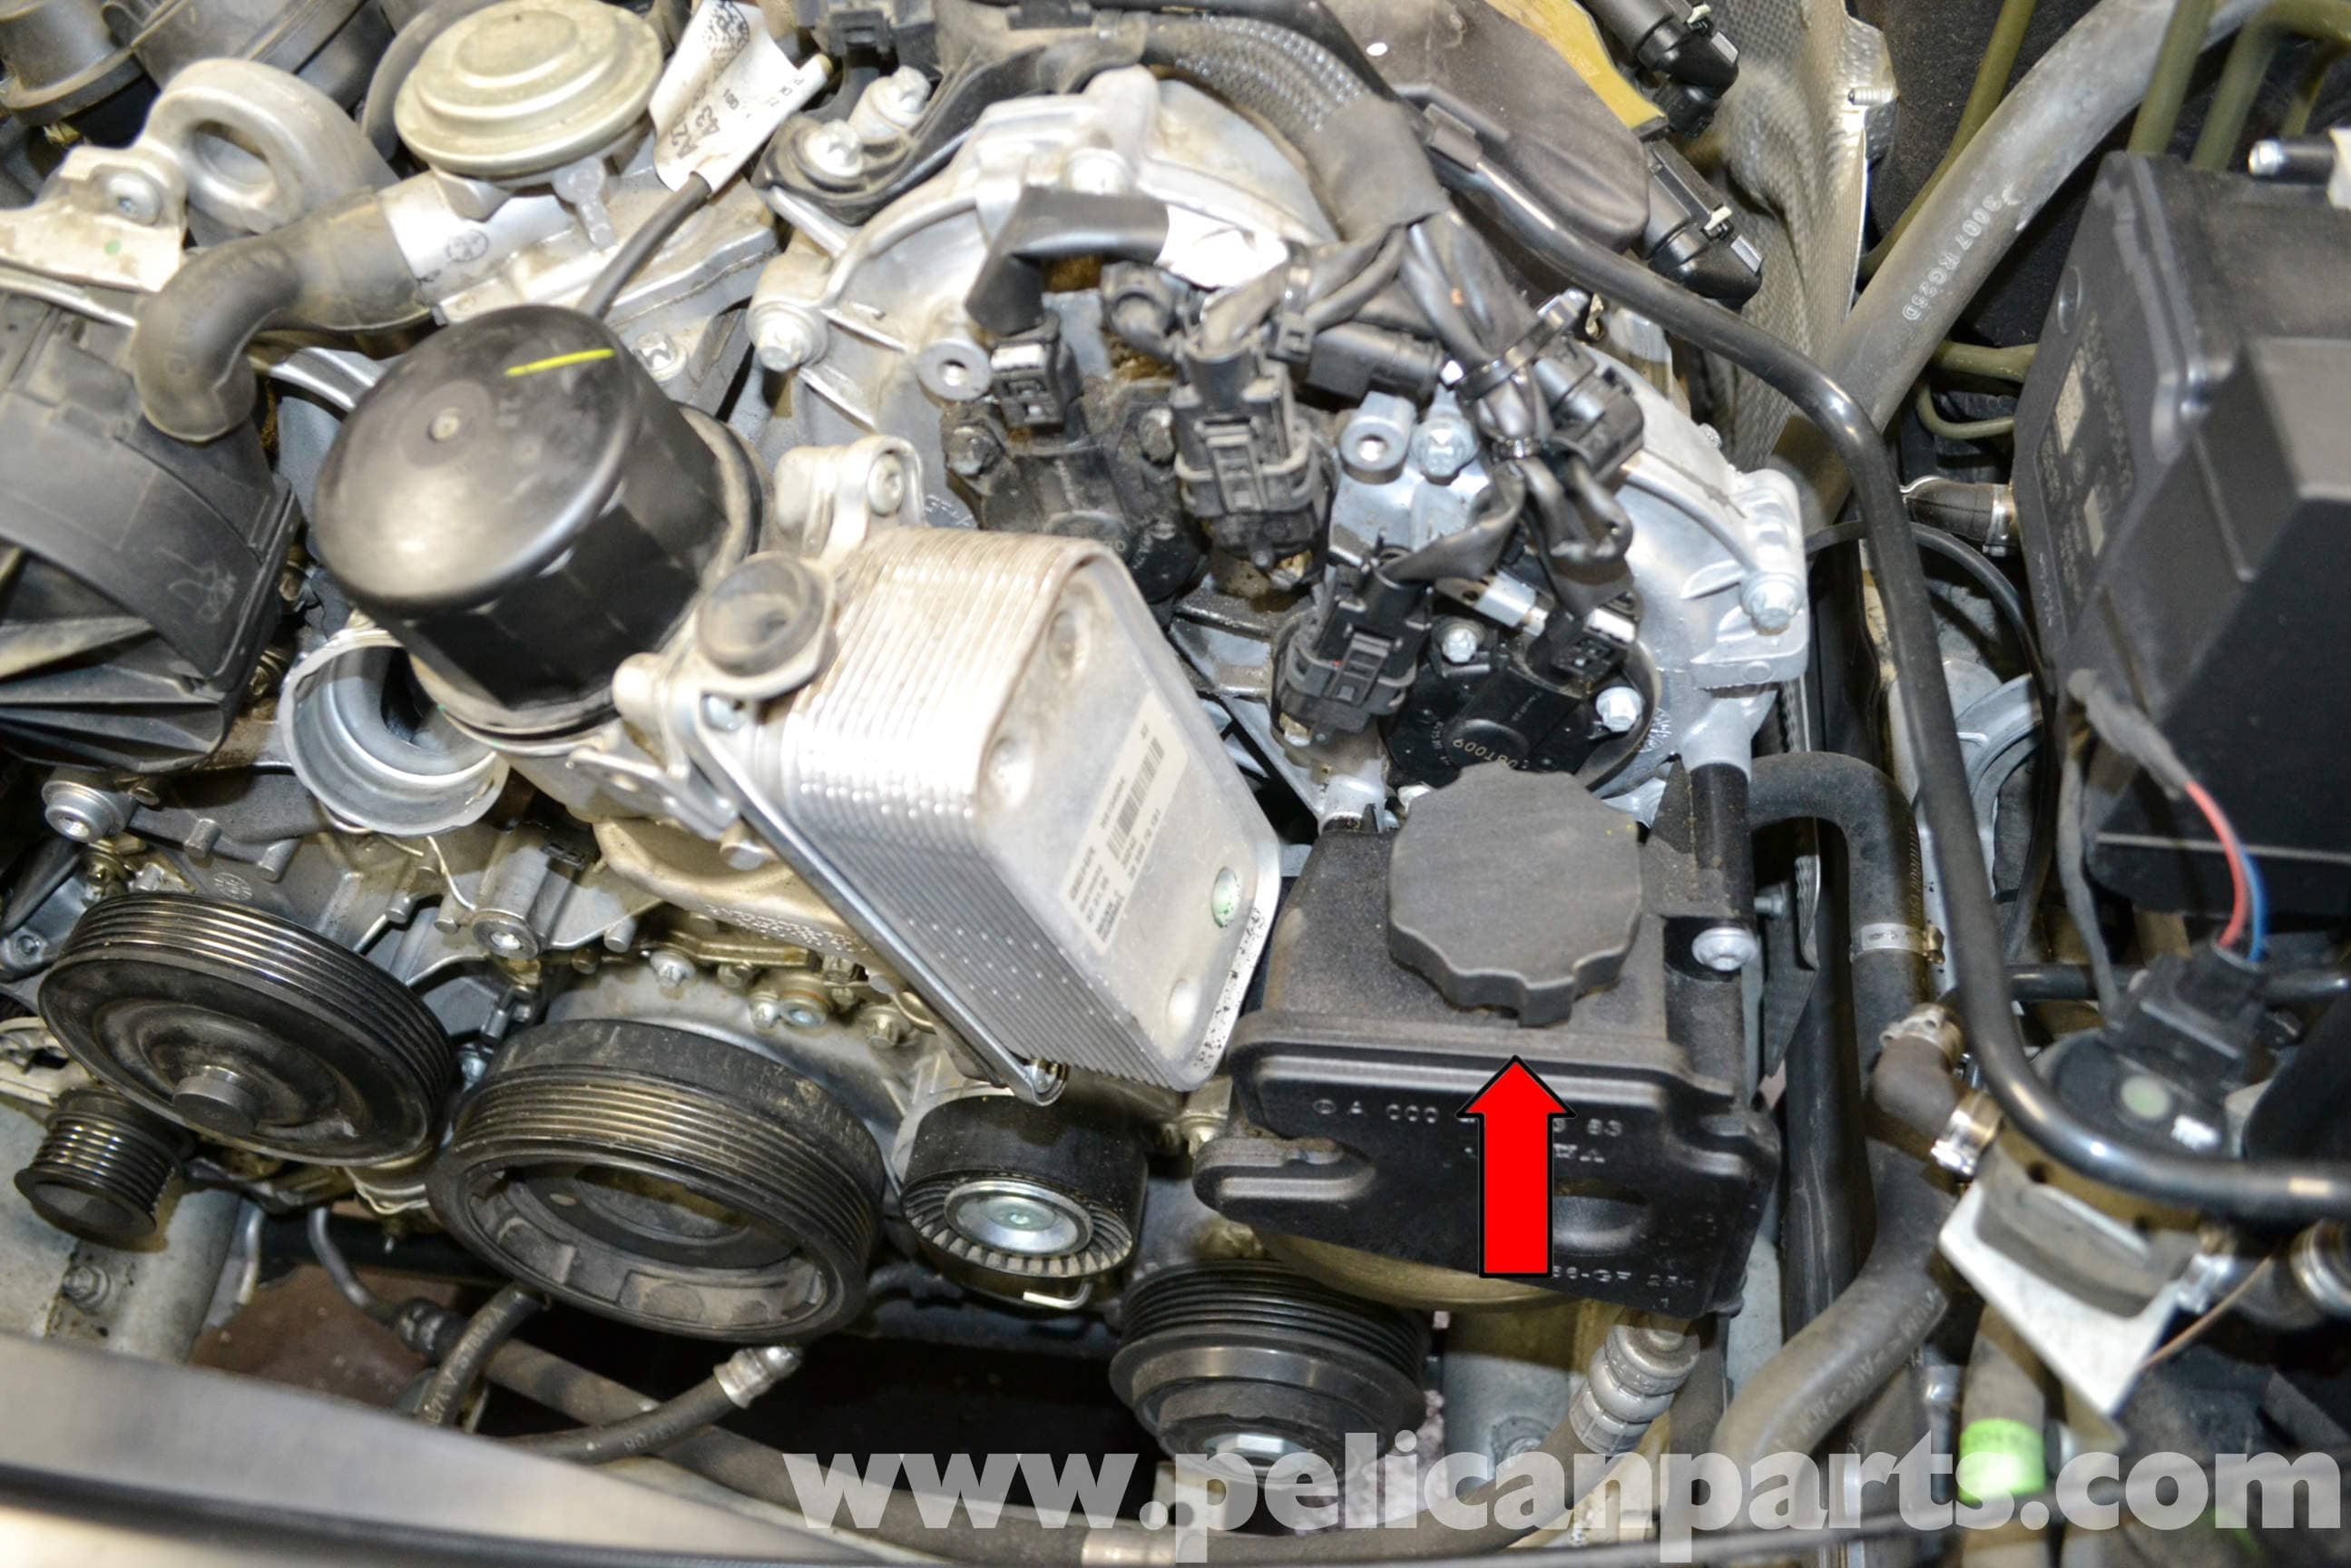 How Much Is A Power Steering Pump >> Mercedes-Benz W204 Power Steering Flush - (2008-2014) C250 ...